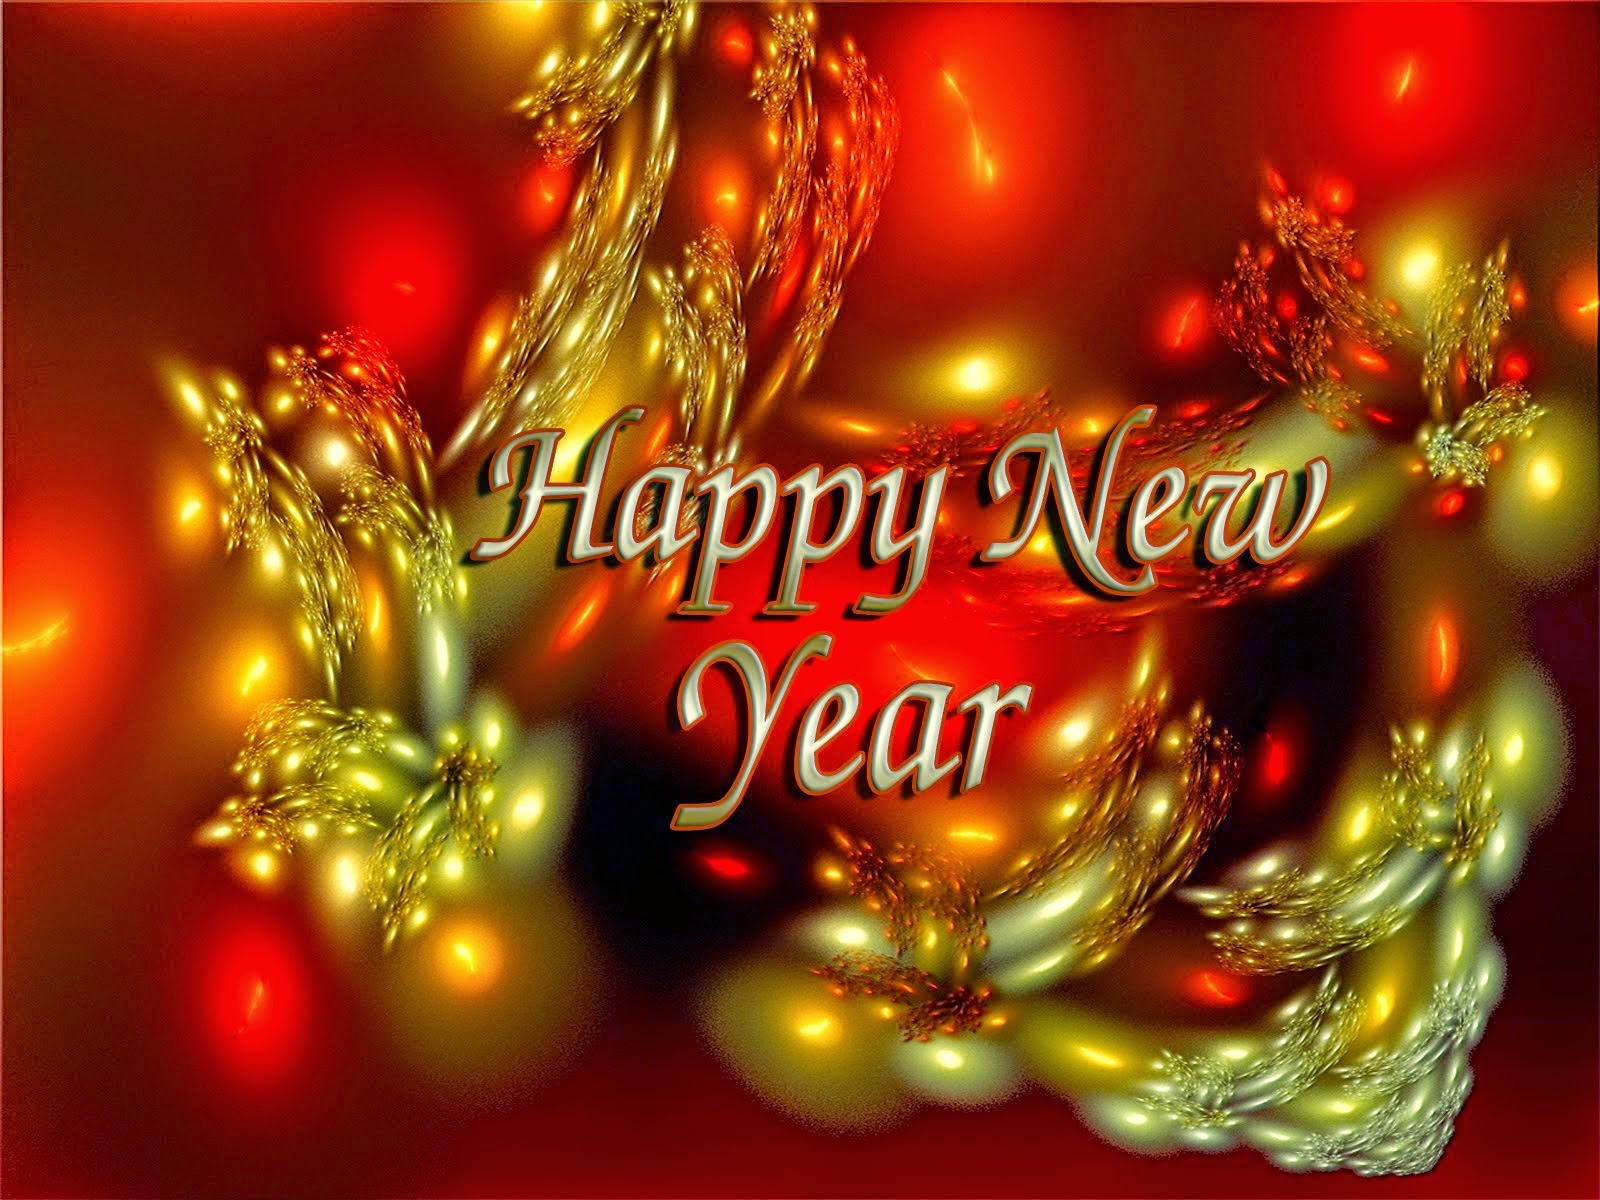 Society New Year Quotes Merry Christmas And Happy New Year 2018